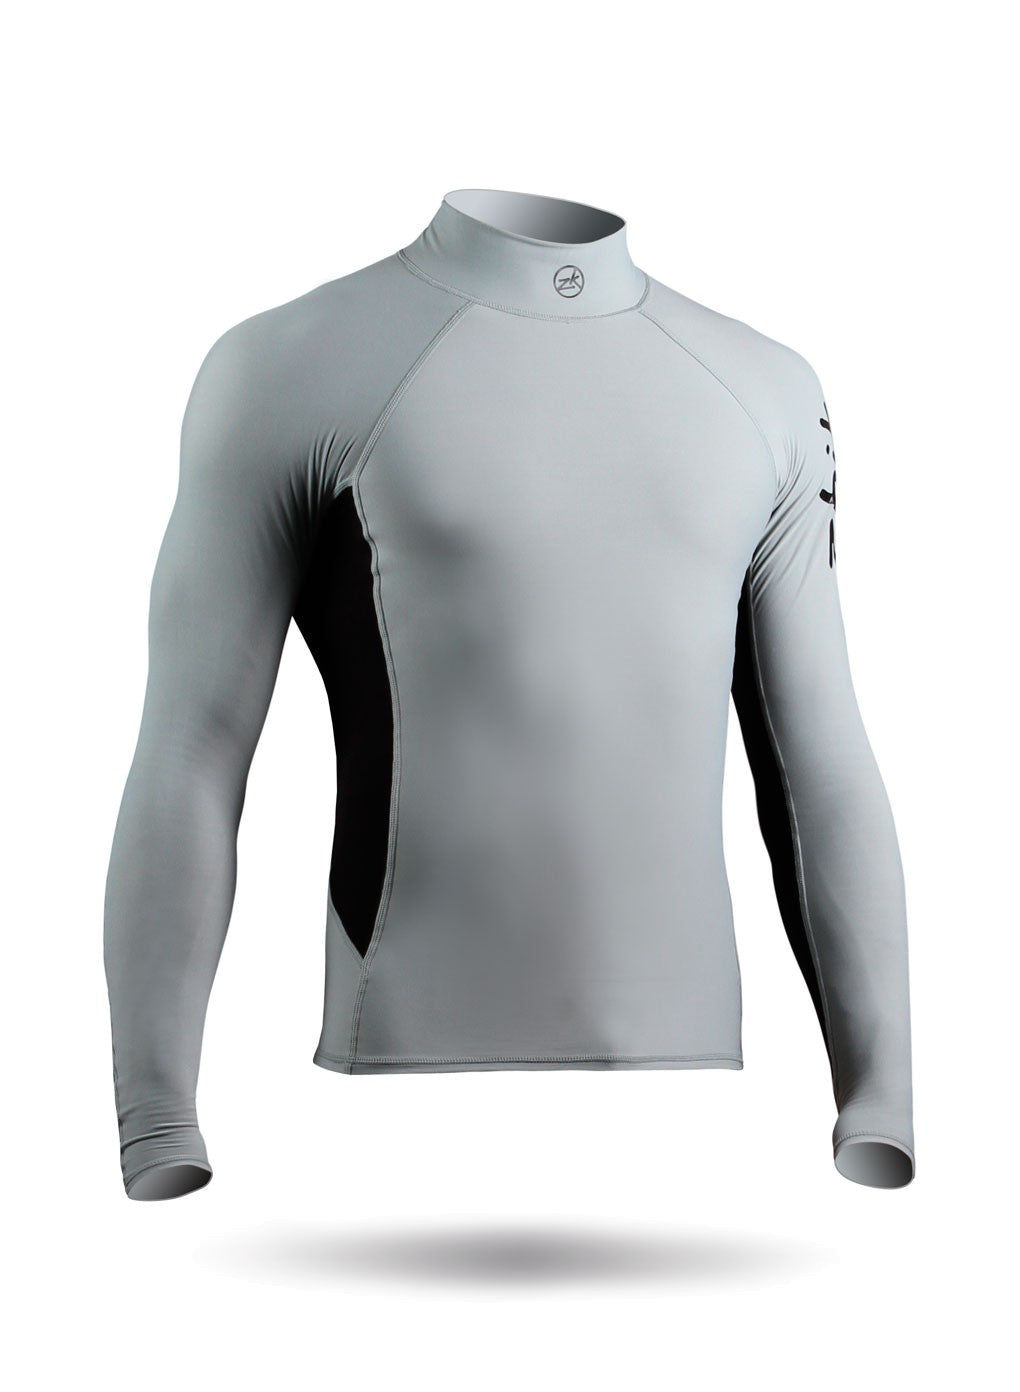 Top, Hydrophobic Fleece - Zhik